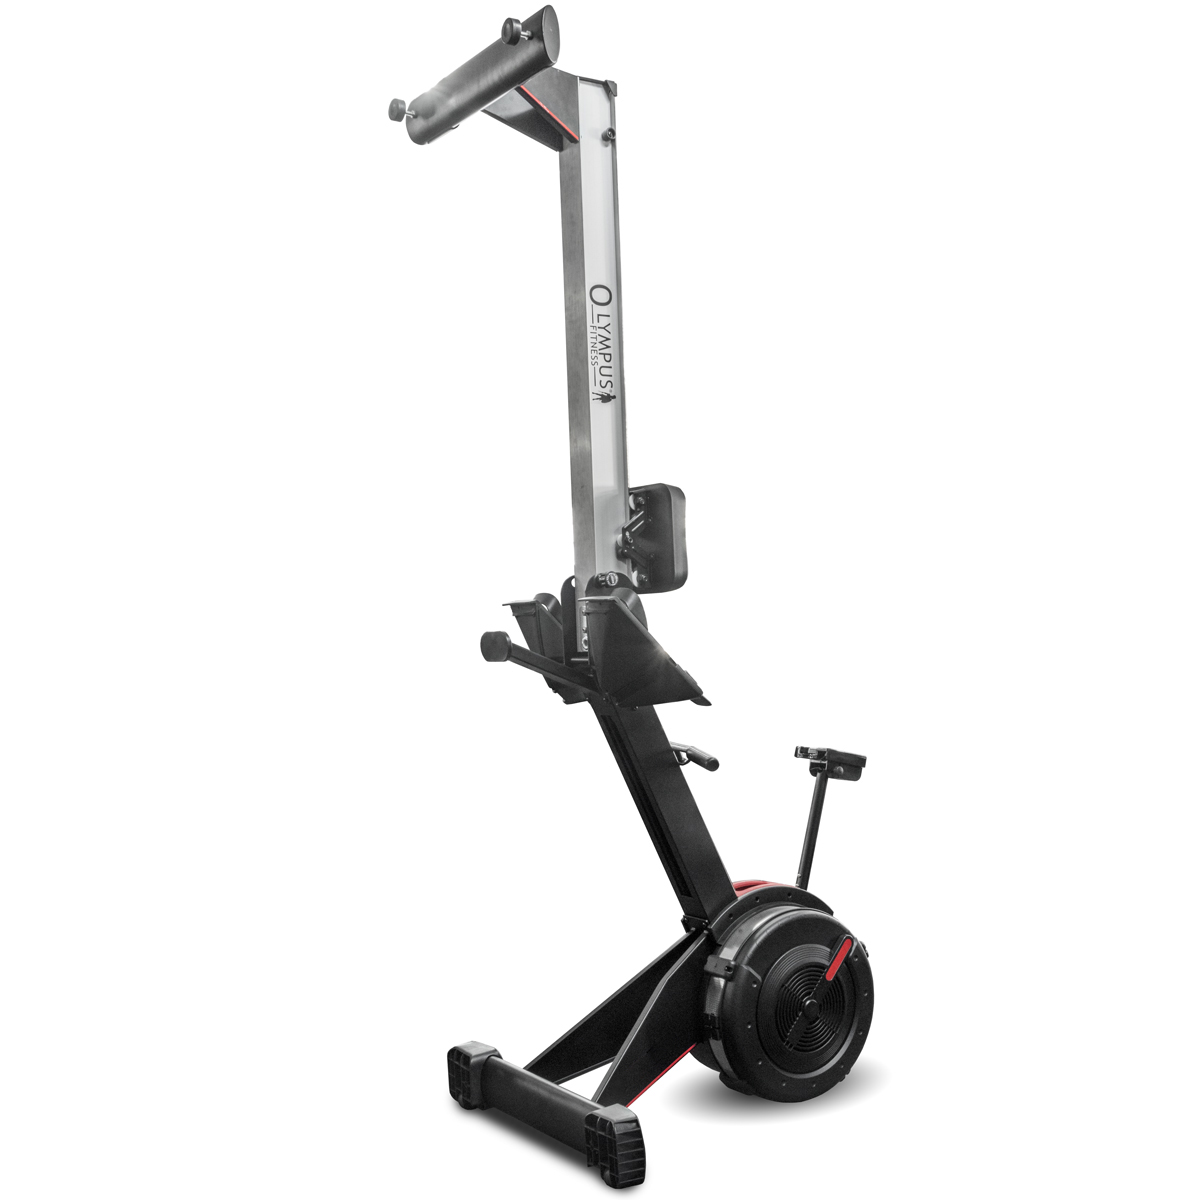 Rower Rowing Machine by Renouf Fitness